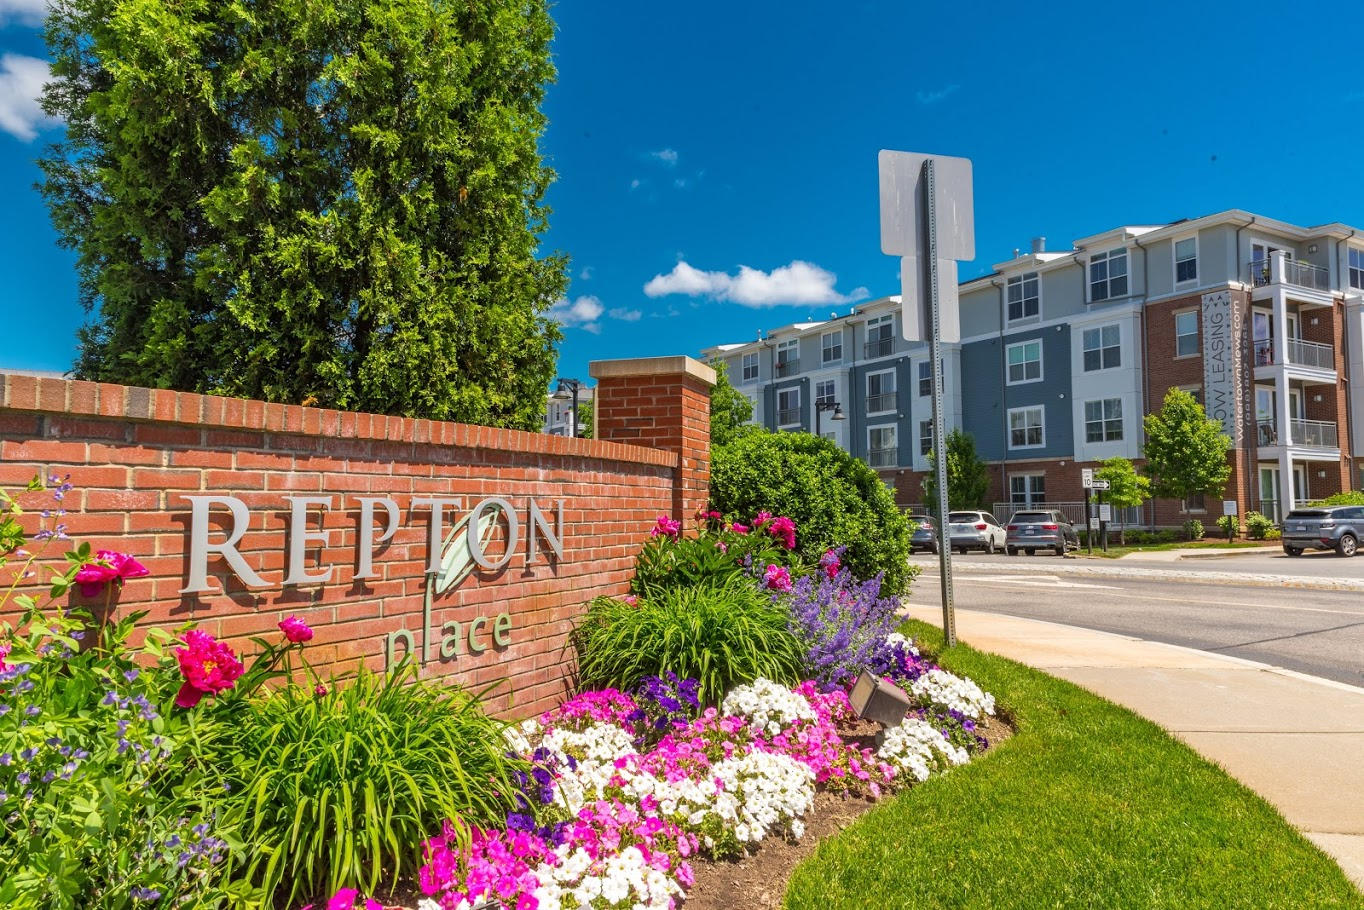 Repton Place